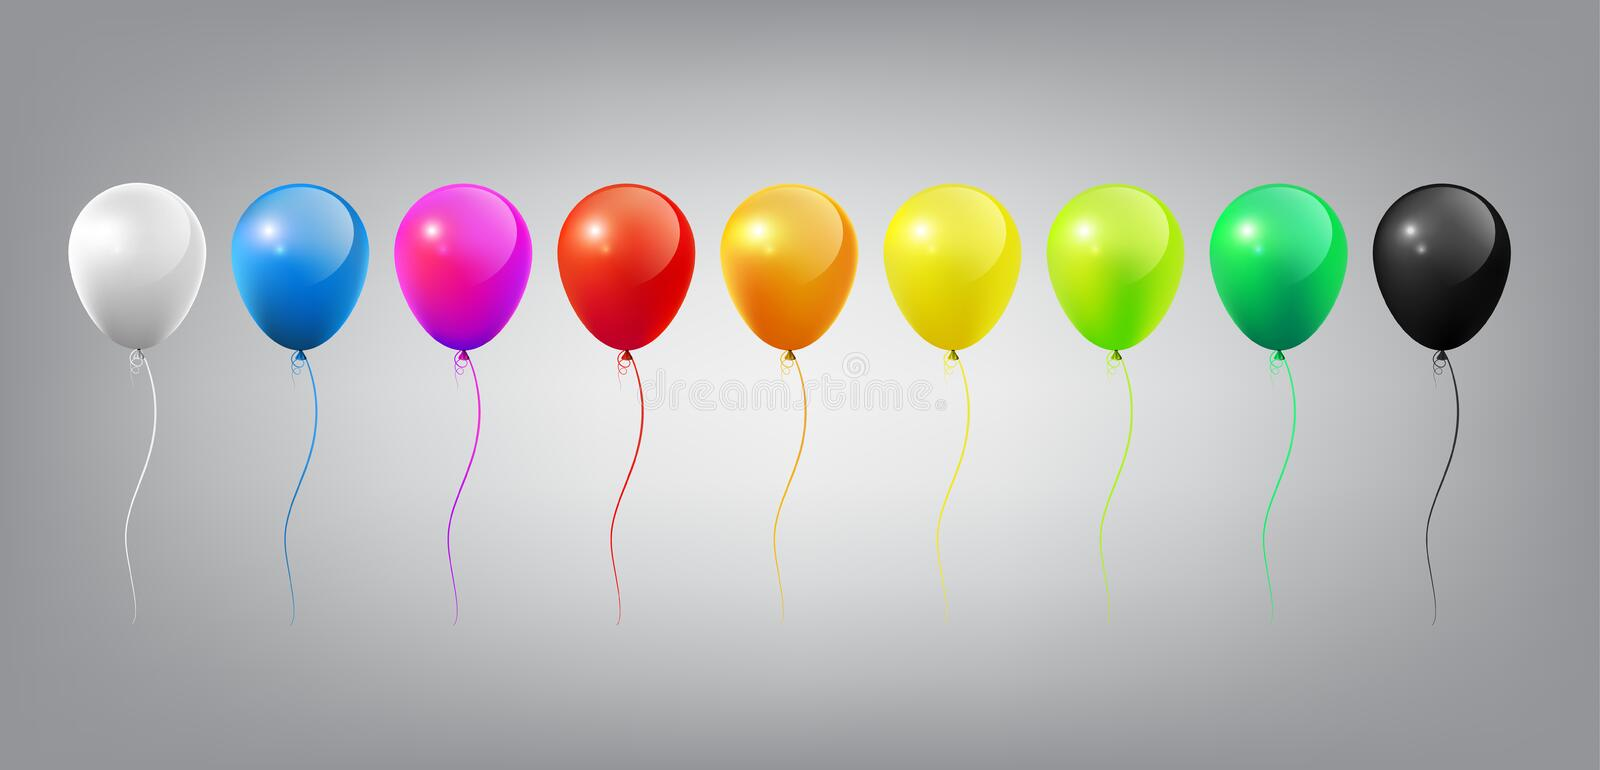 Flying Realistic Glossy Colorful Balloons template with Party and Celebration concept on white background stock illustration